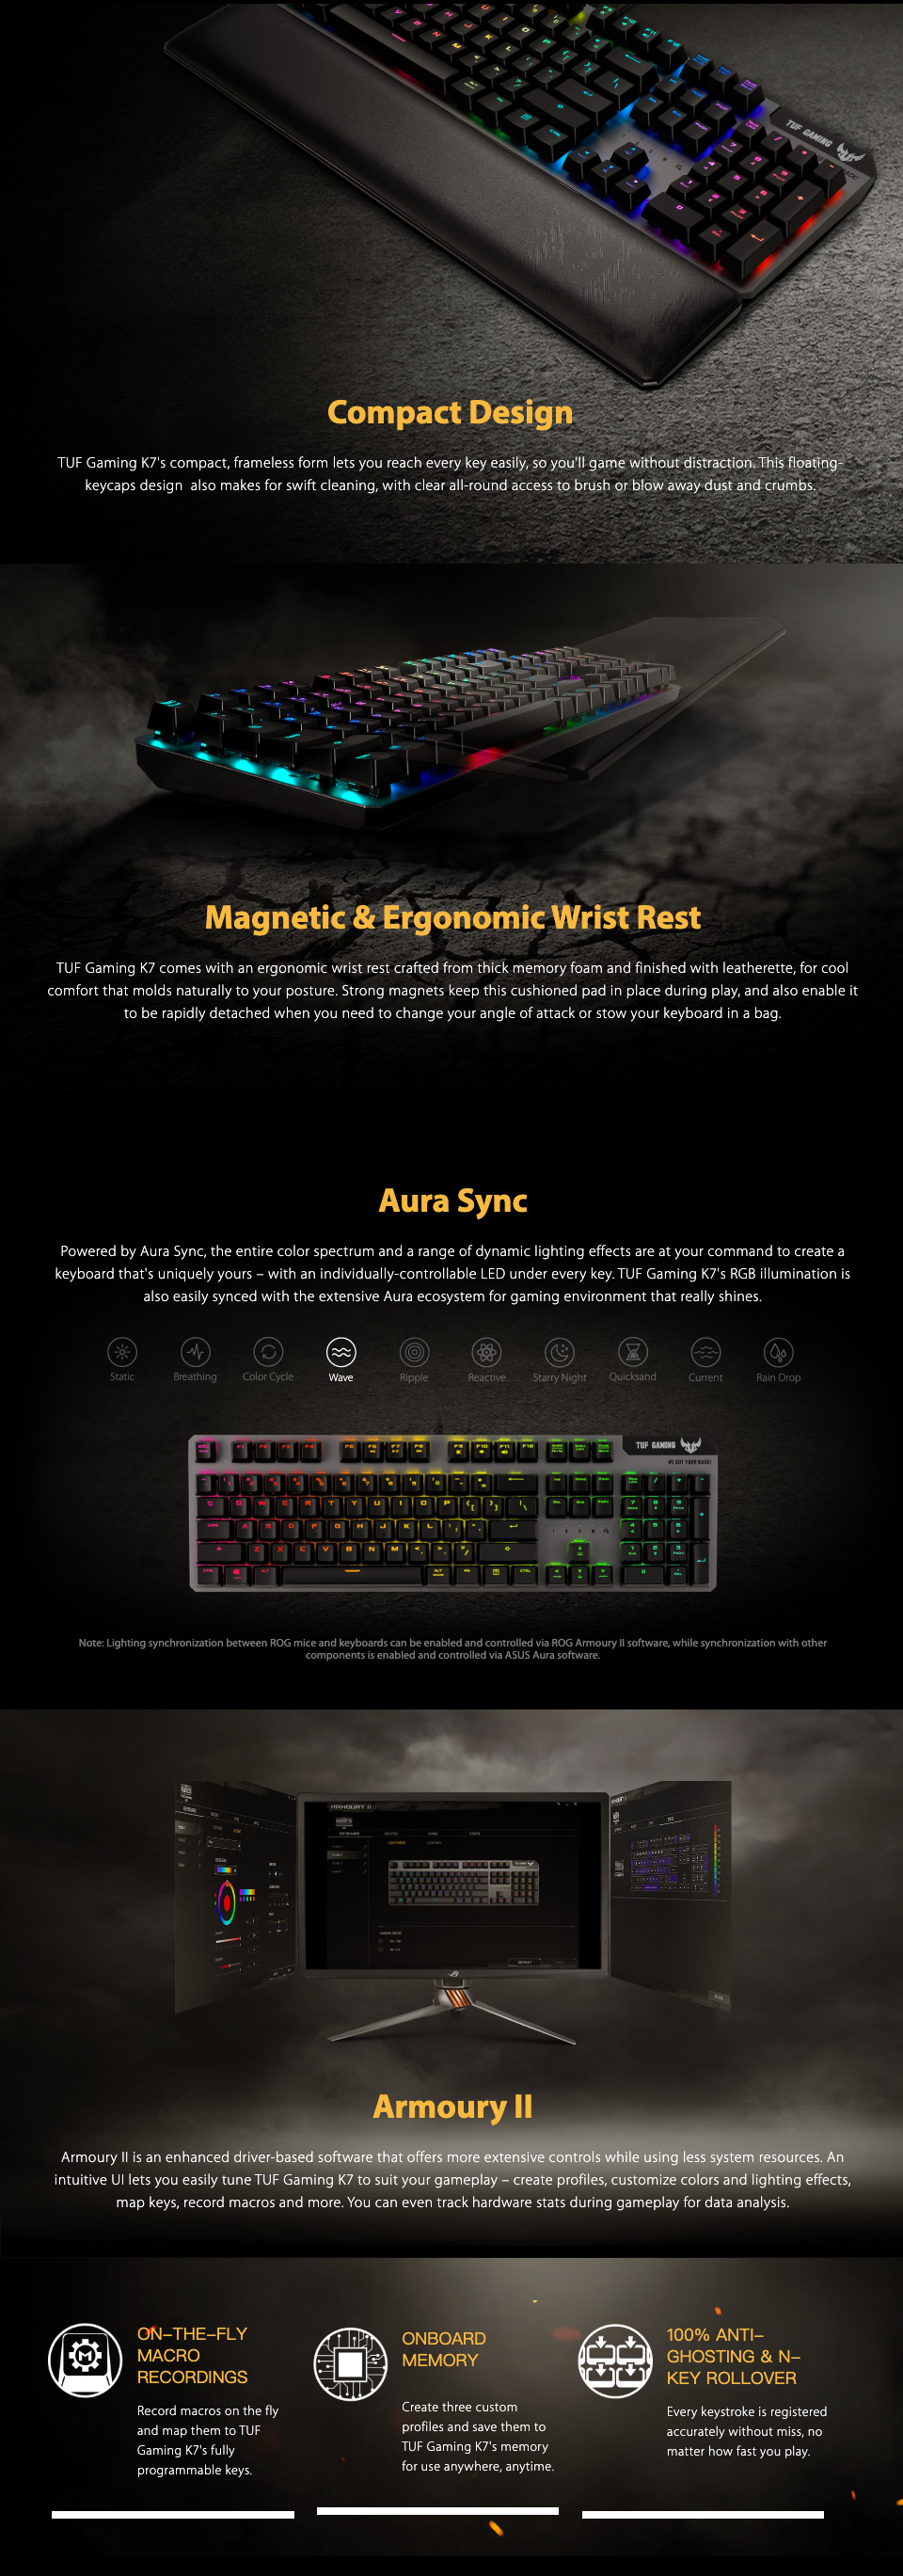 ASUS TUF K7 Optical-Mech RGB Keyboard Linear Switch features